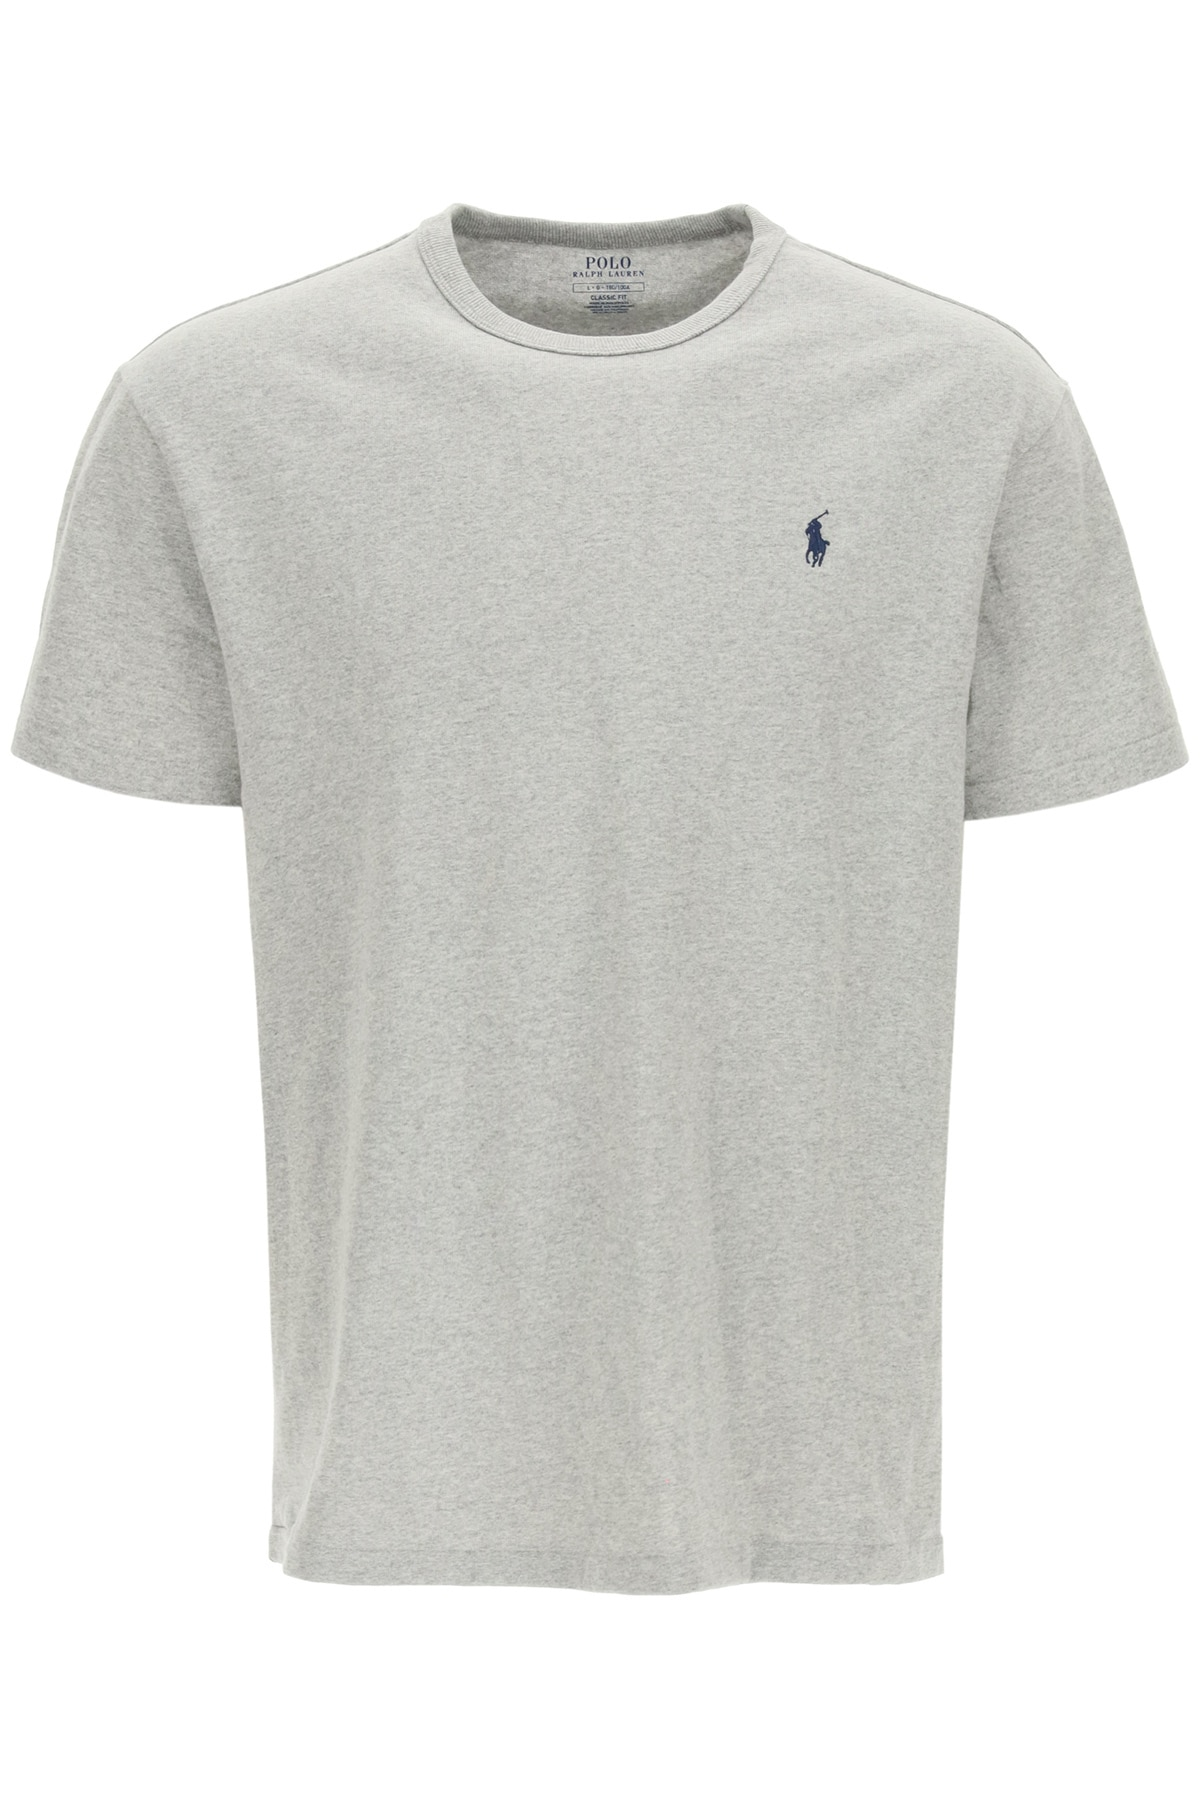 POLO RALPH LAUREN T-SHIRT WITH LOGO EMBROIDERY L Grey, Blue Cotton